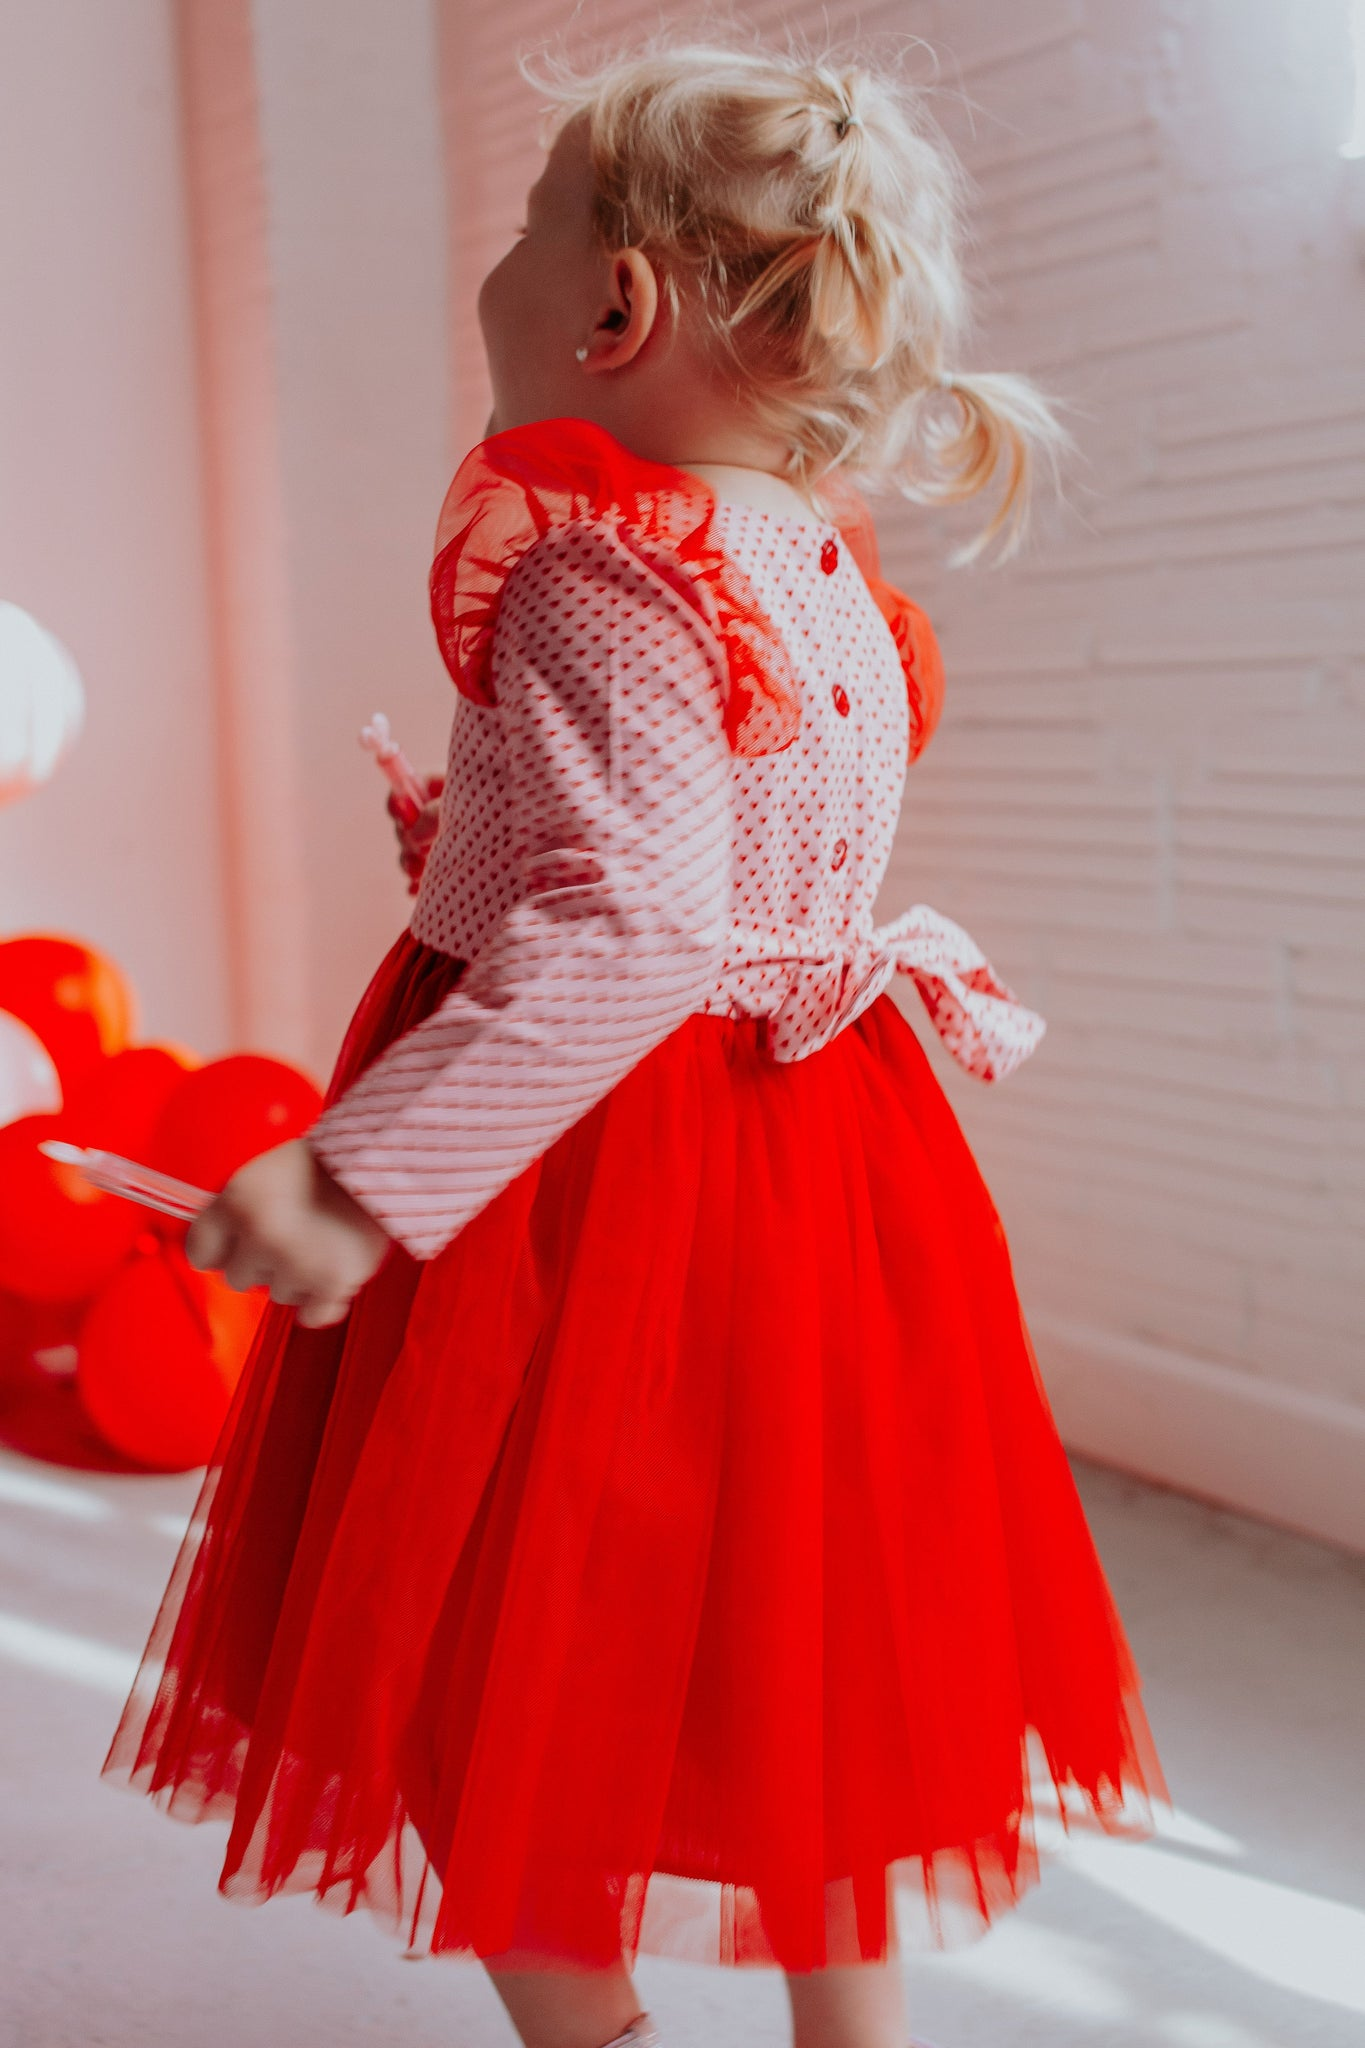 Photoshoot dress size 2-3 years Girls Pink Heart dress for Valentines Day or Birthday Short sleeves Tulle twirling skirt